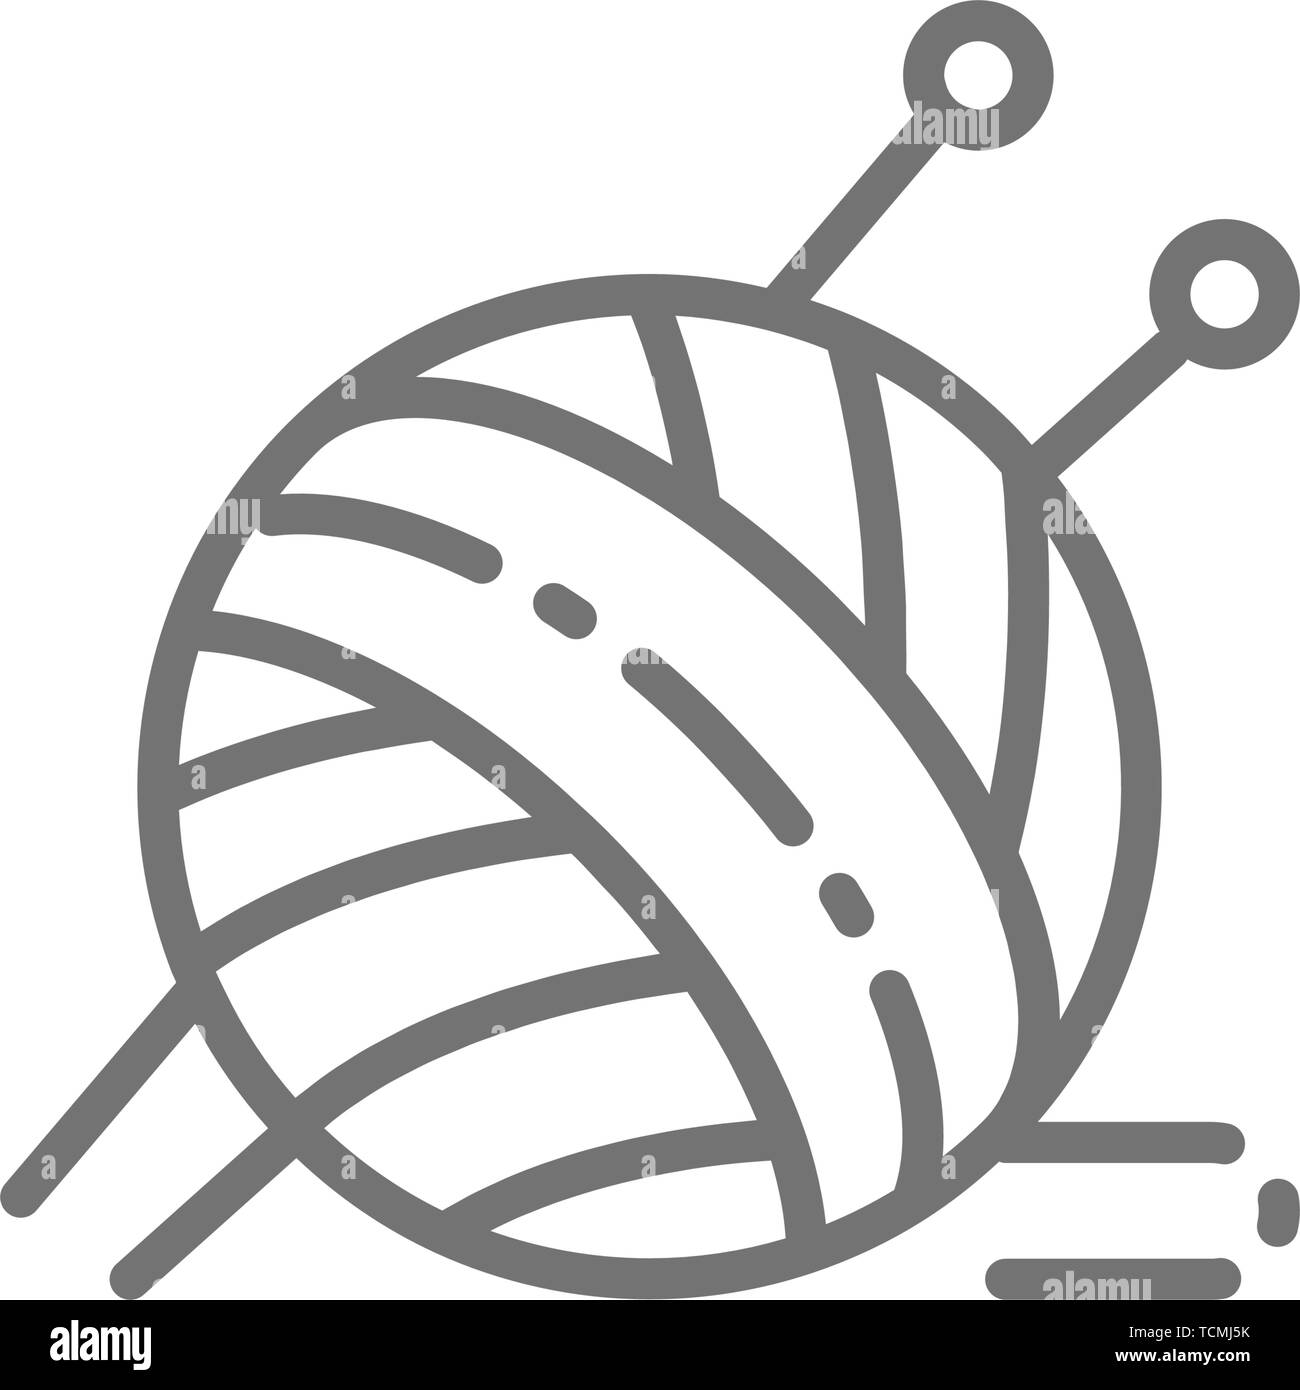 Ball yarn with knitting needles line icon. - Stock Vector